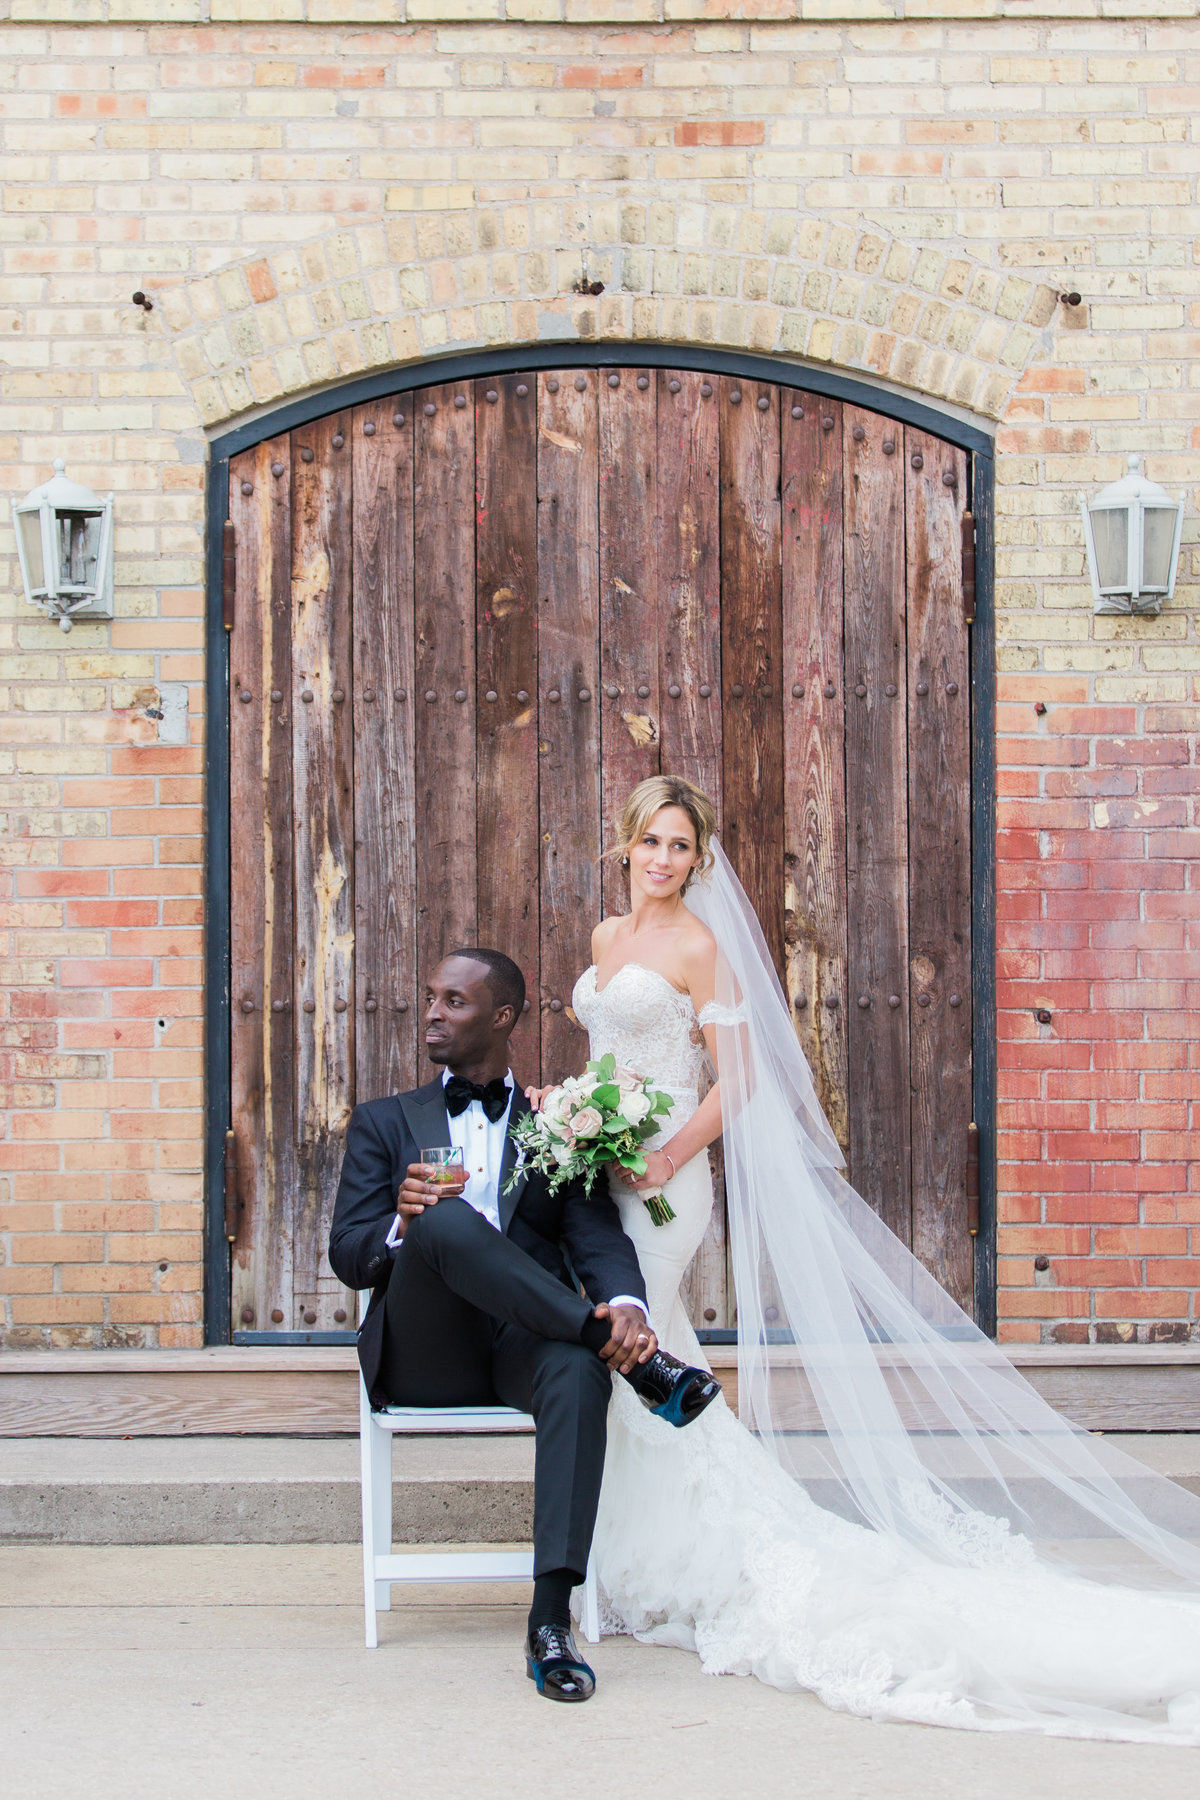 groom sitting on chair with bride in front of old door